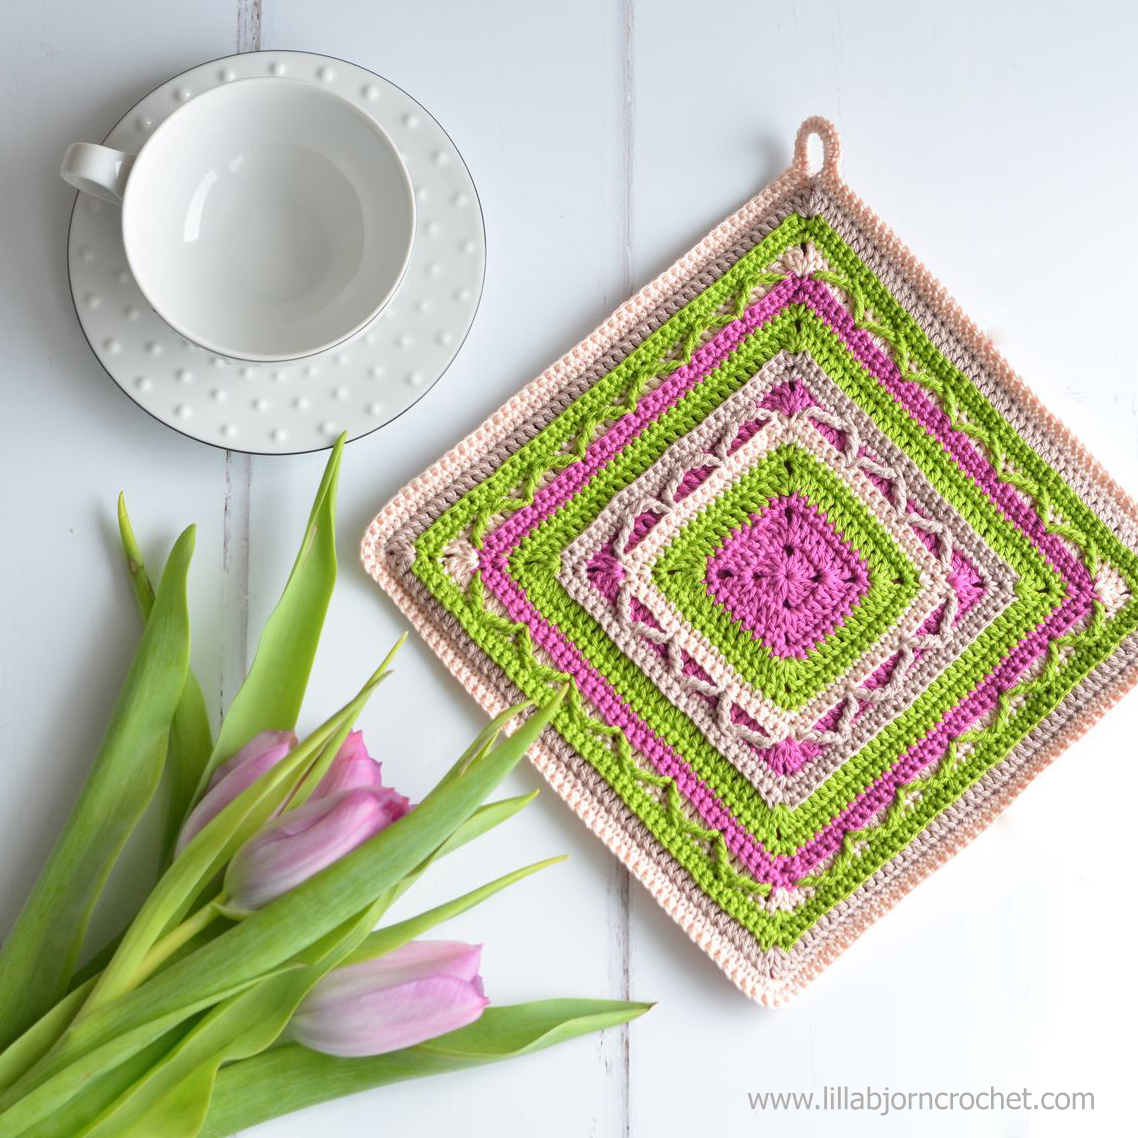 Tulip Potholder - FREE crochet pattern by LillaBjornCrochet